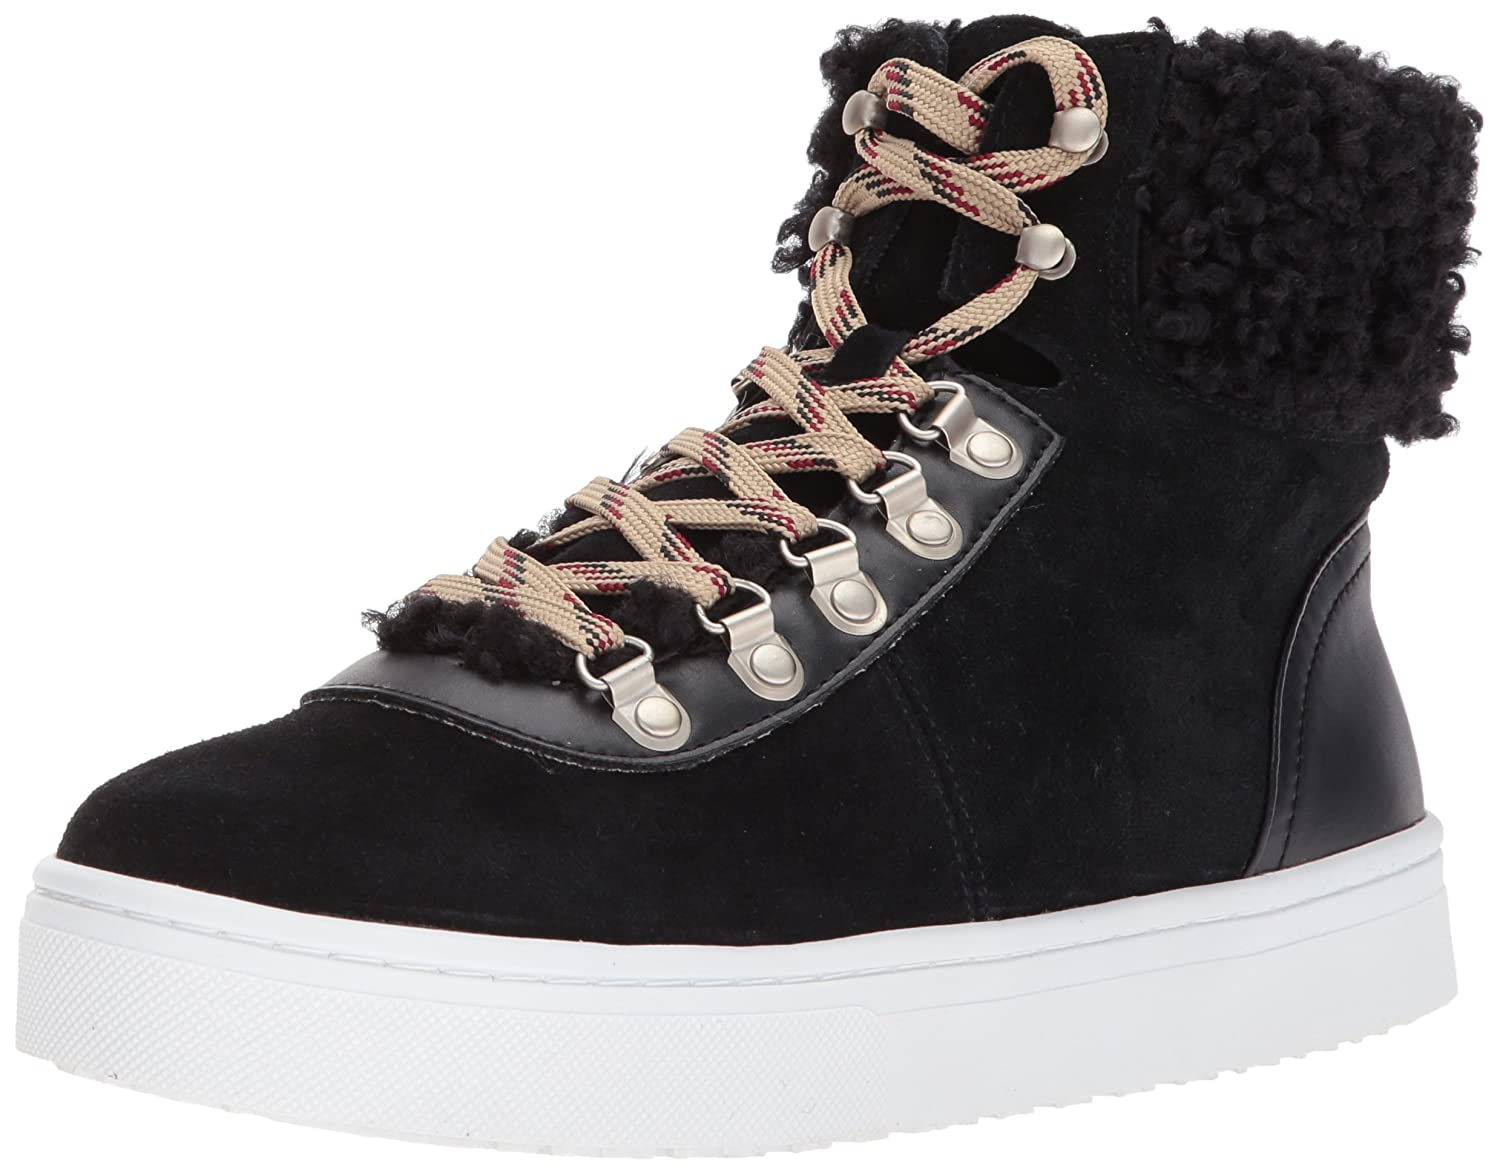 Sam Edelman Women's Luther Sneaker B0722S1XN6 8.5 B(M) US|Black